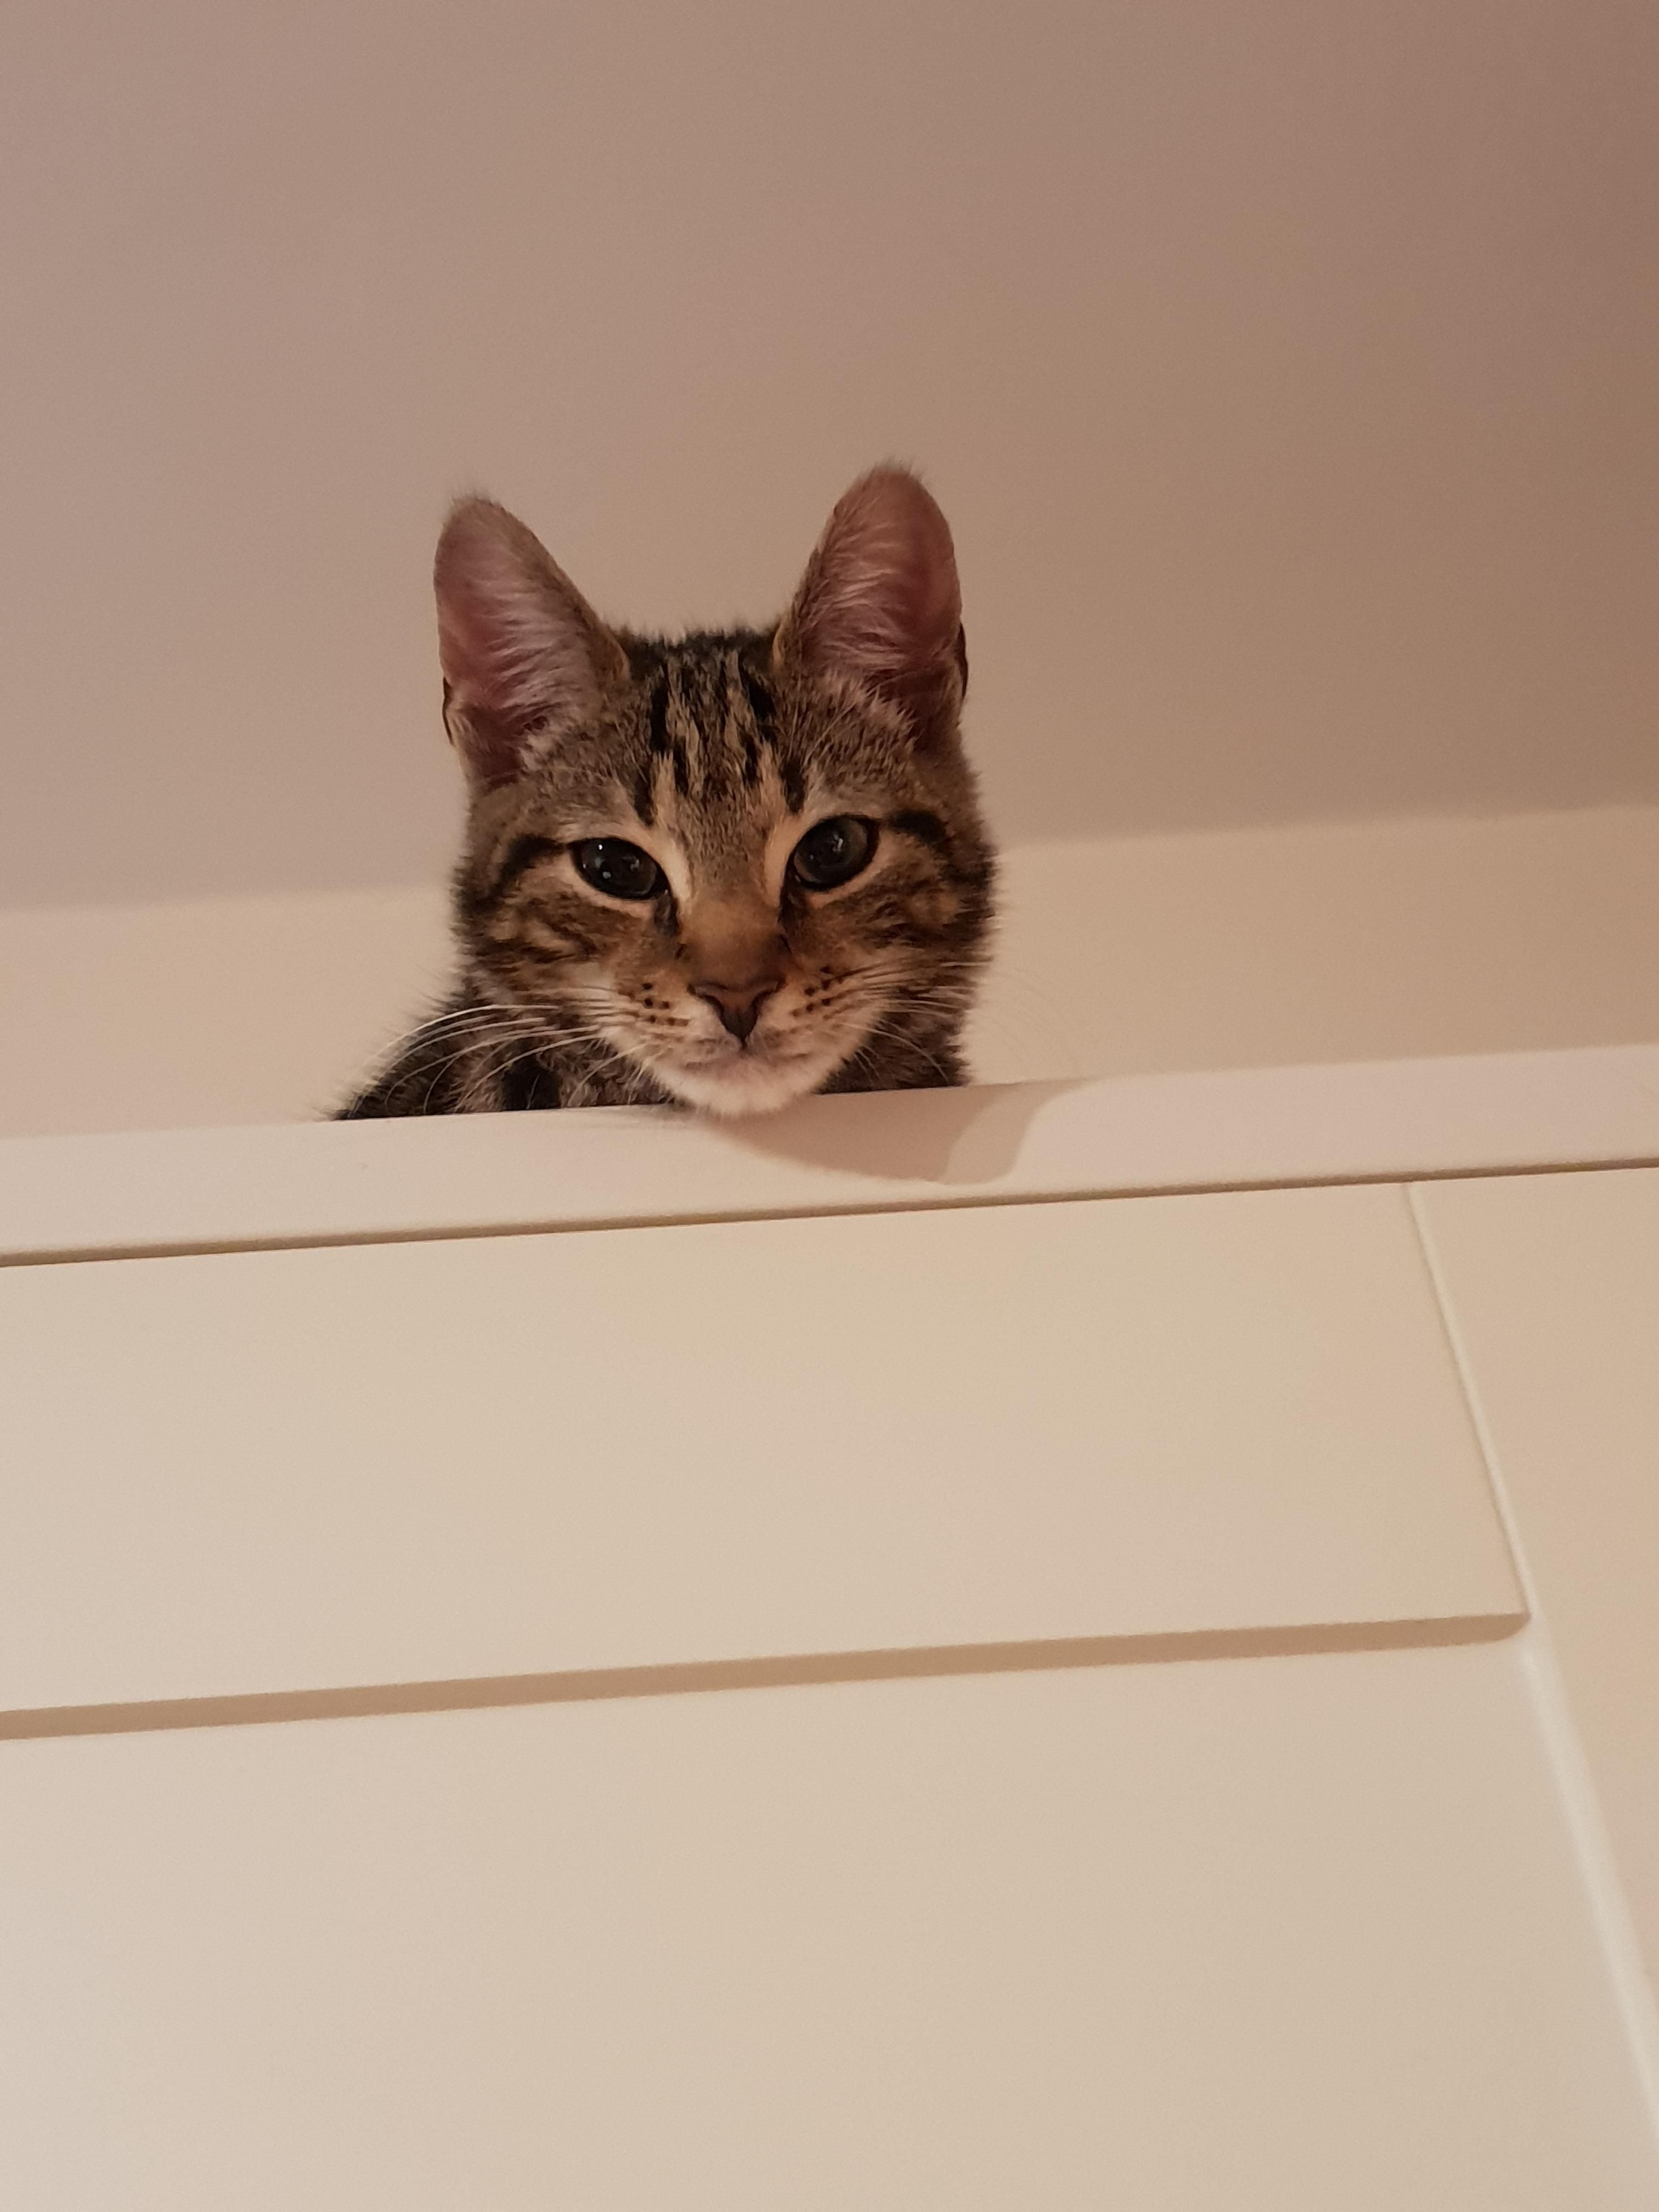 Cheeky 6 Month Old Kitten Watching Me And My Girlfriend Cook Tea He Will Try To Eat Anything That Isn T Nailed Down Ht Kittens 6 Month Olds Me As A Girlfriend